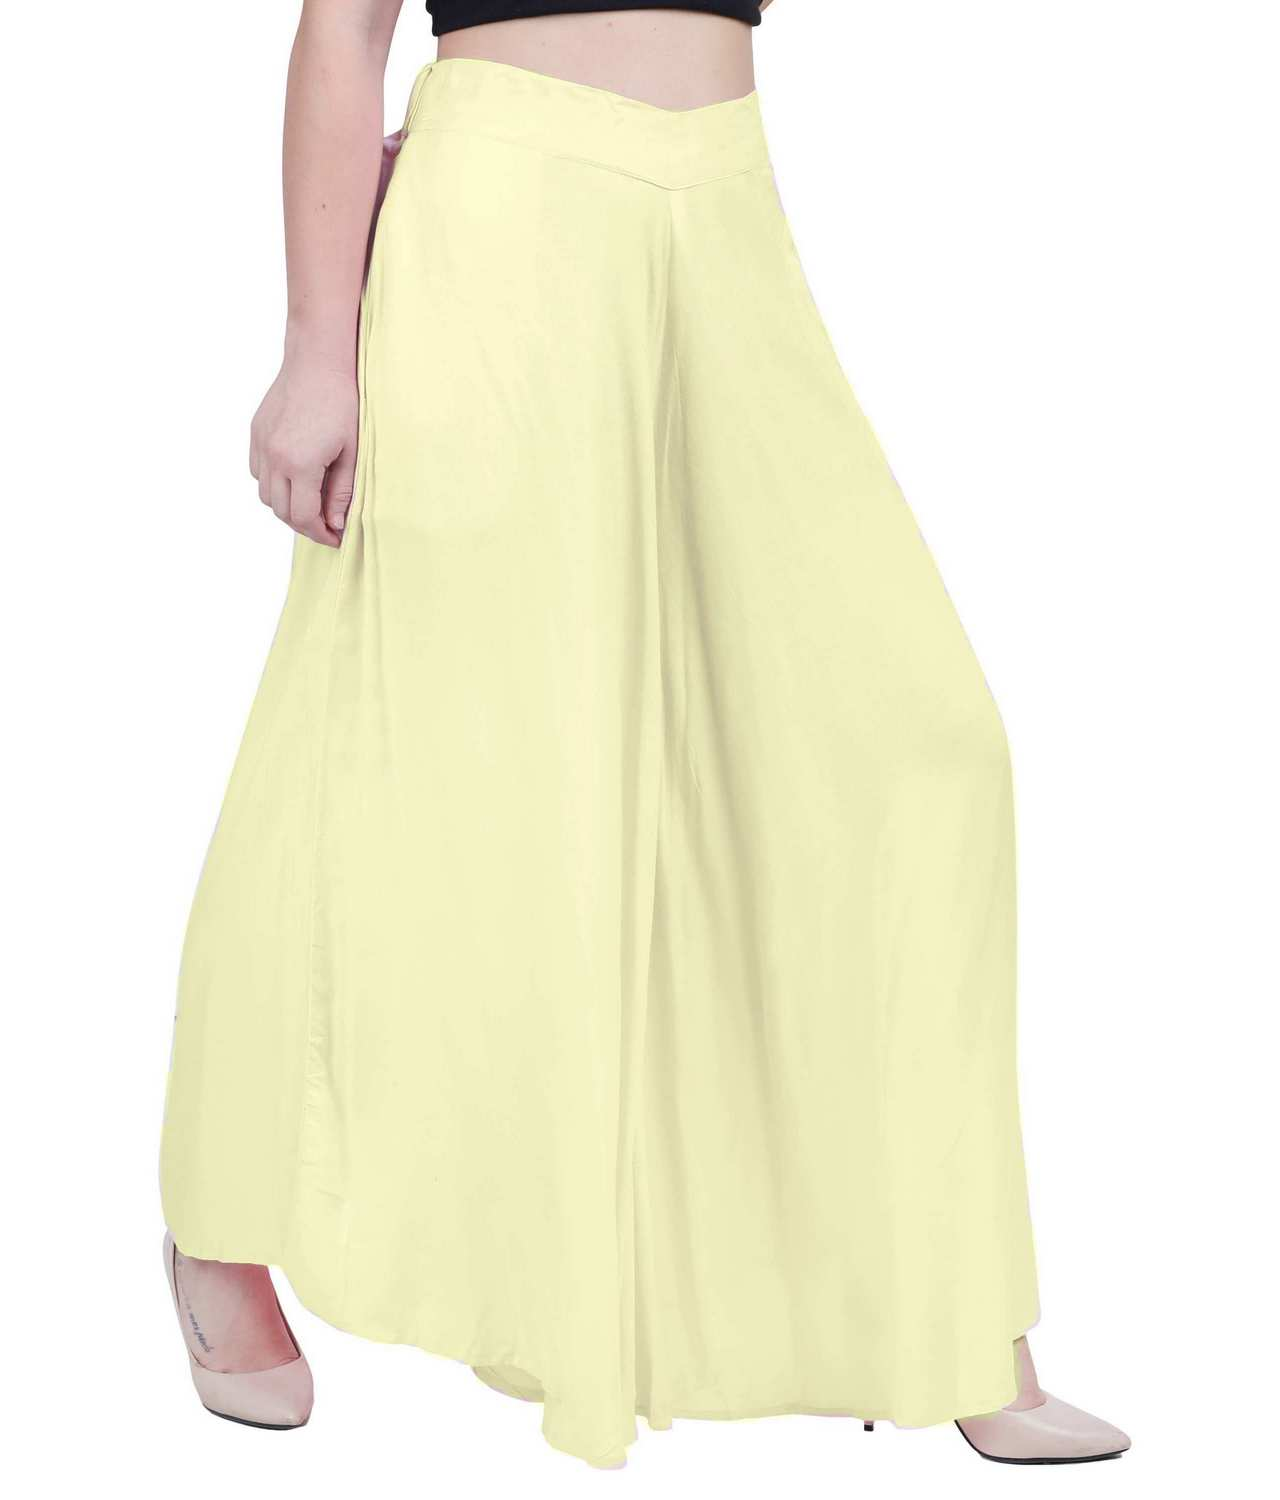 Loose Fit Wide Leg Palazzo Pant in Cream